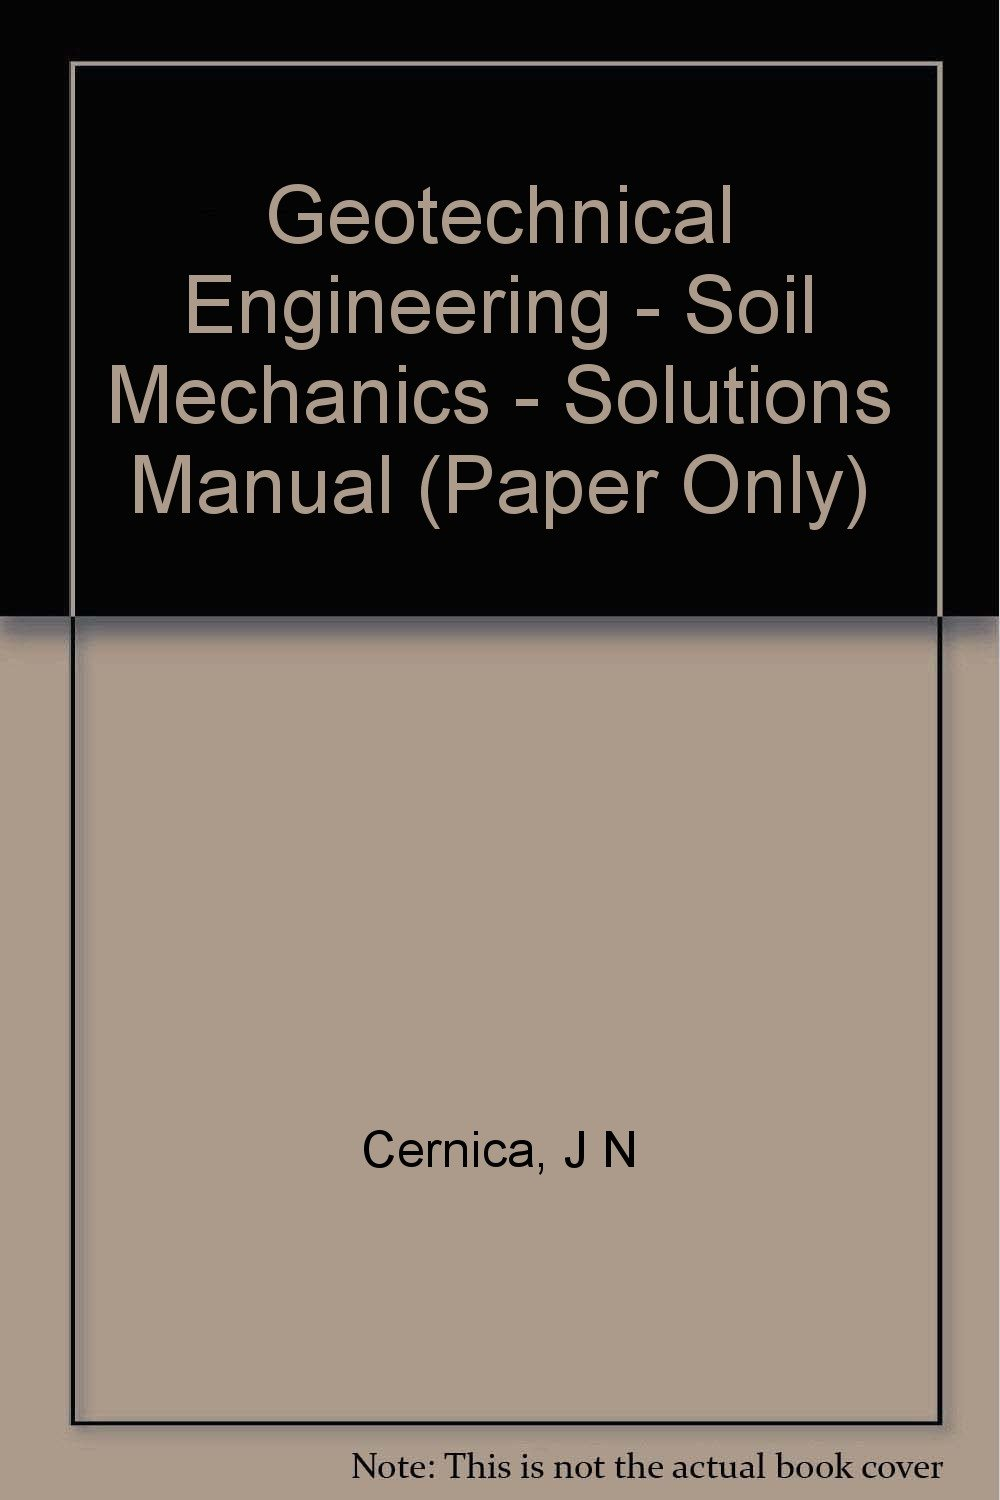 Geotechnical Engineering - Soil Mechanics - Solutions Manual (Paper Only):  John N. Cernica: 9780471103981: Amazon.com: Books